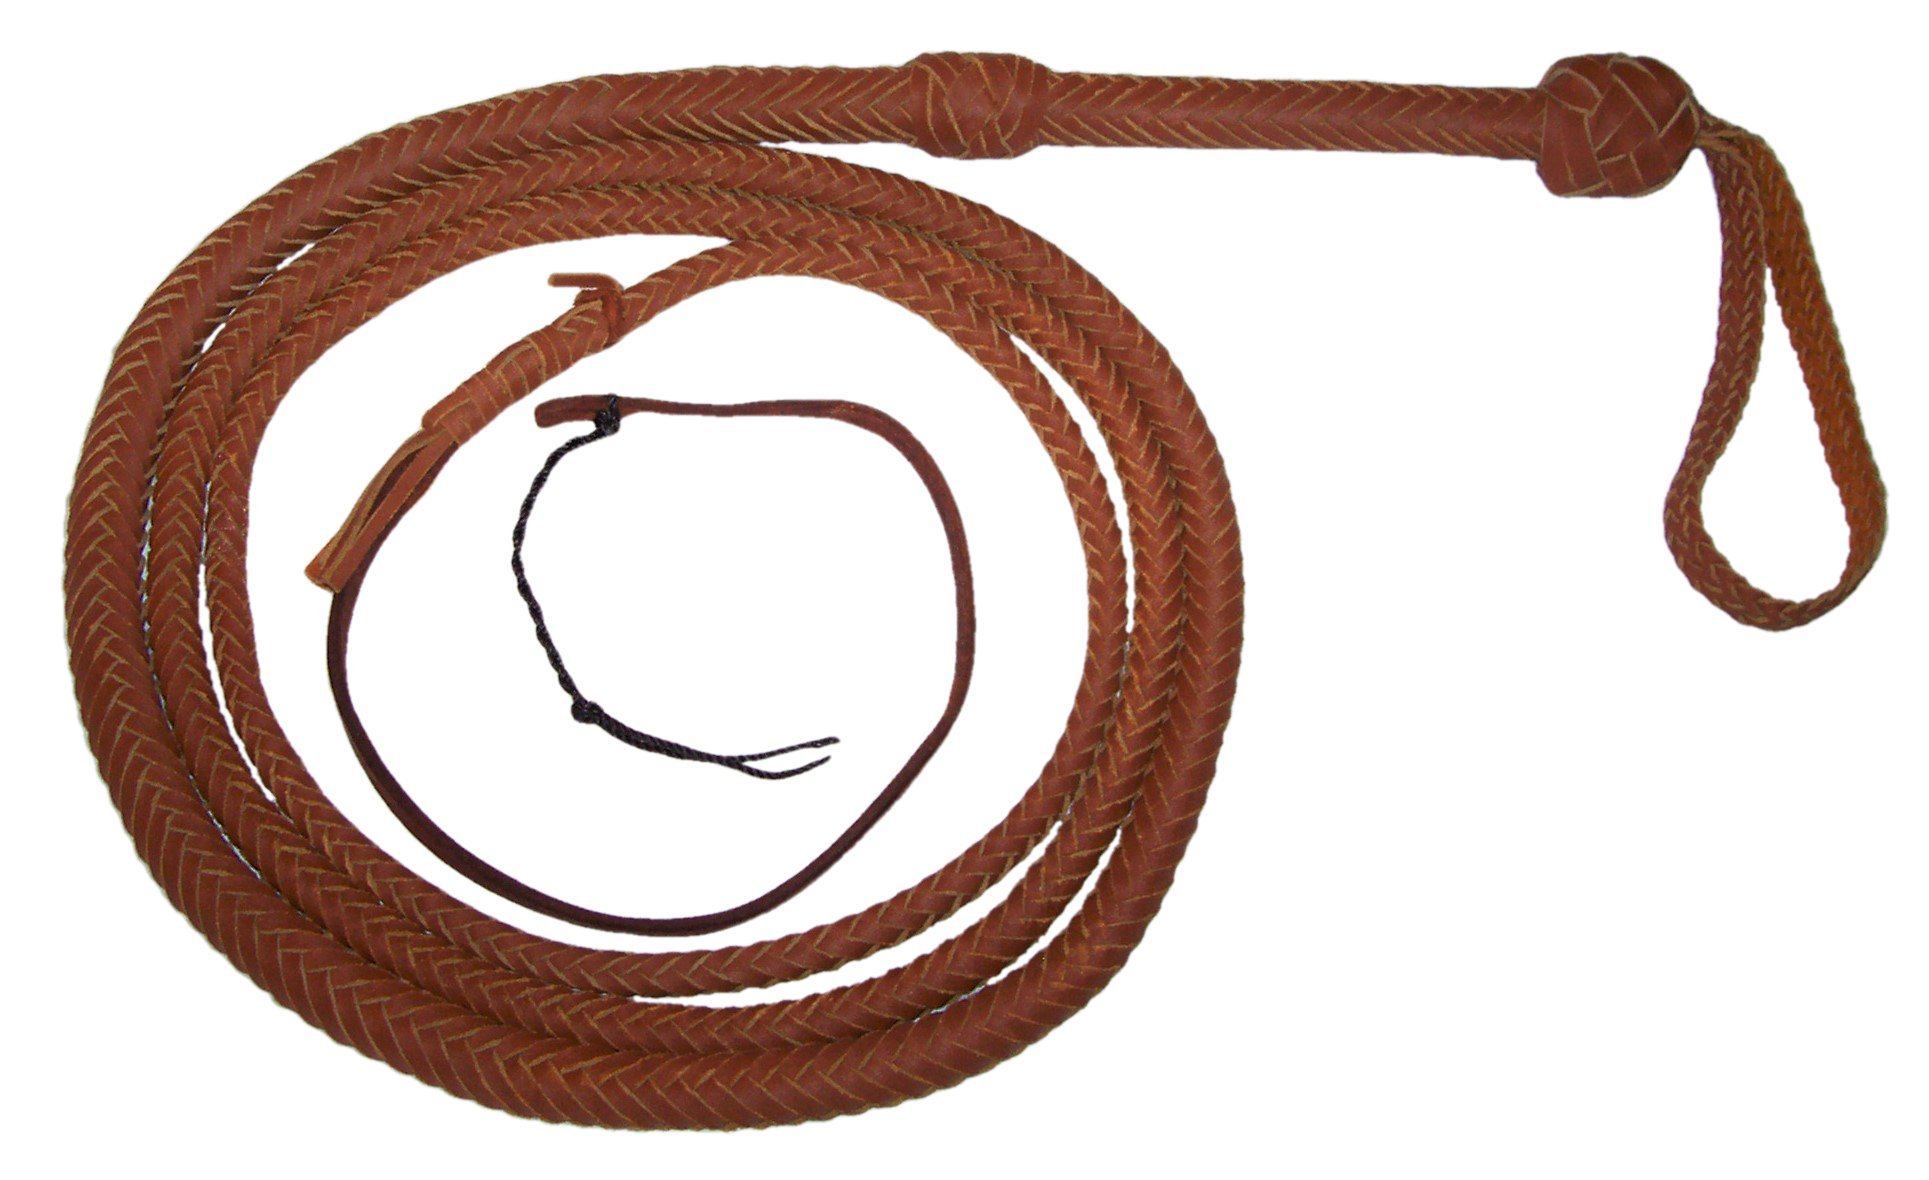 10 Foot 16 Plait Bullwhip Tan Real Leather BULLWHIP BULL WHIPS by JZRJ